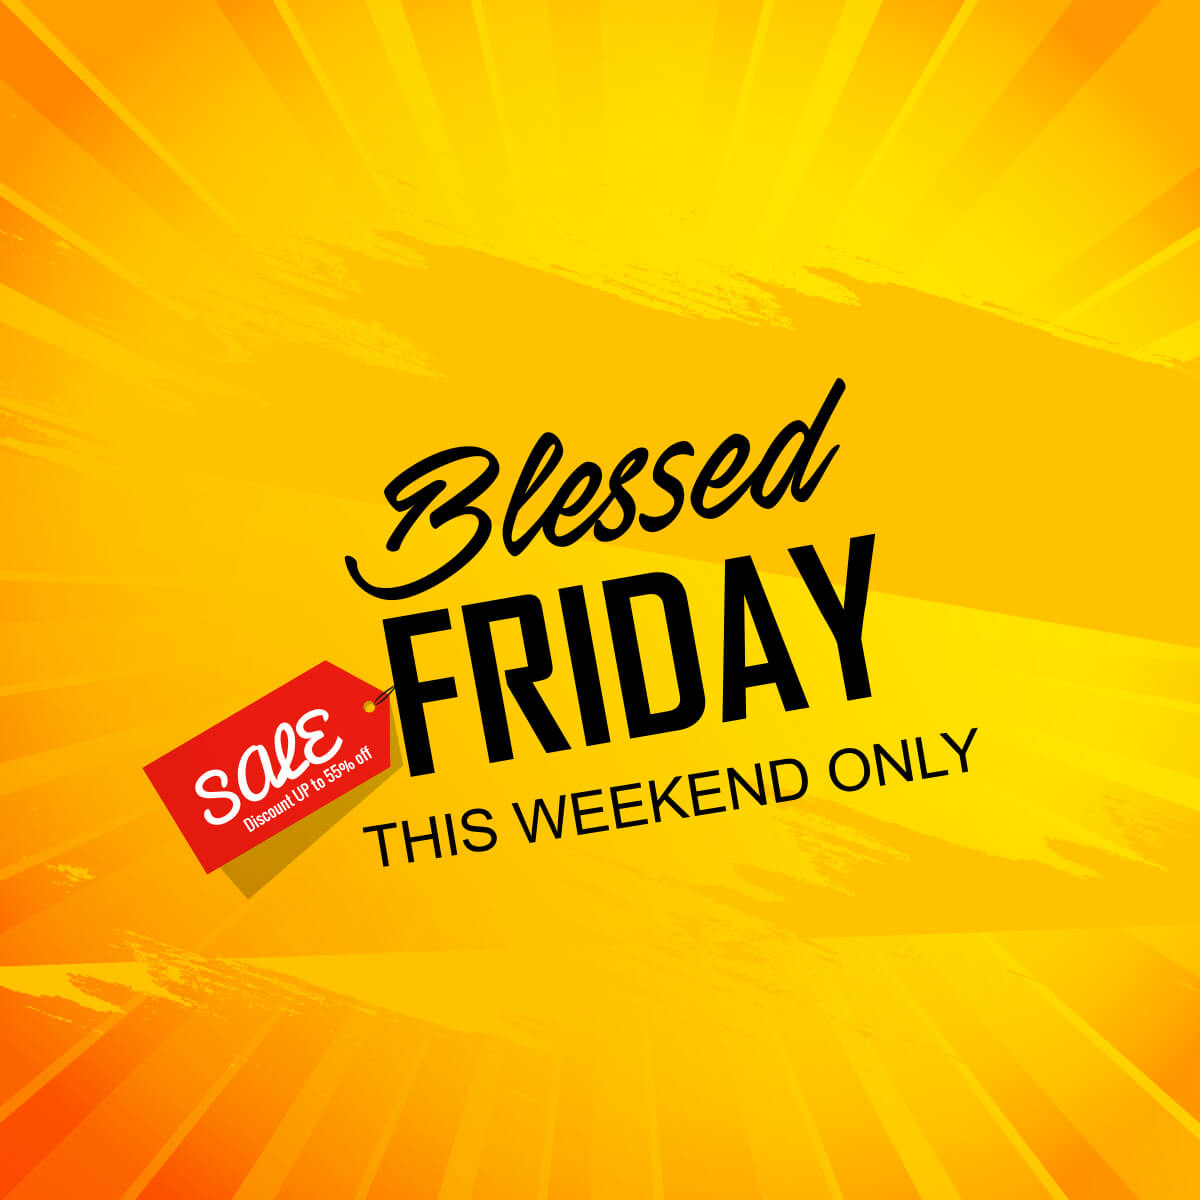 Have You Heard of the Blessed Friday Sales?